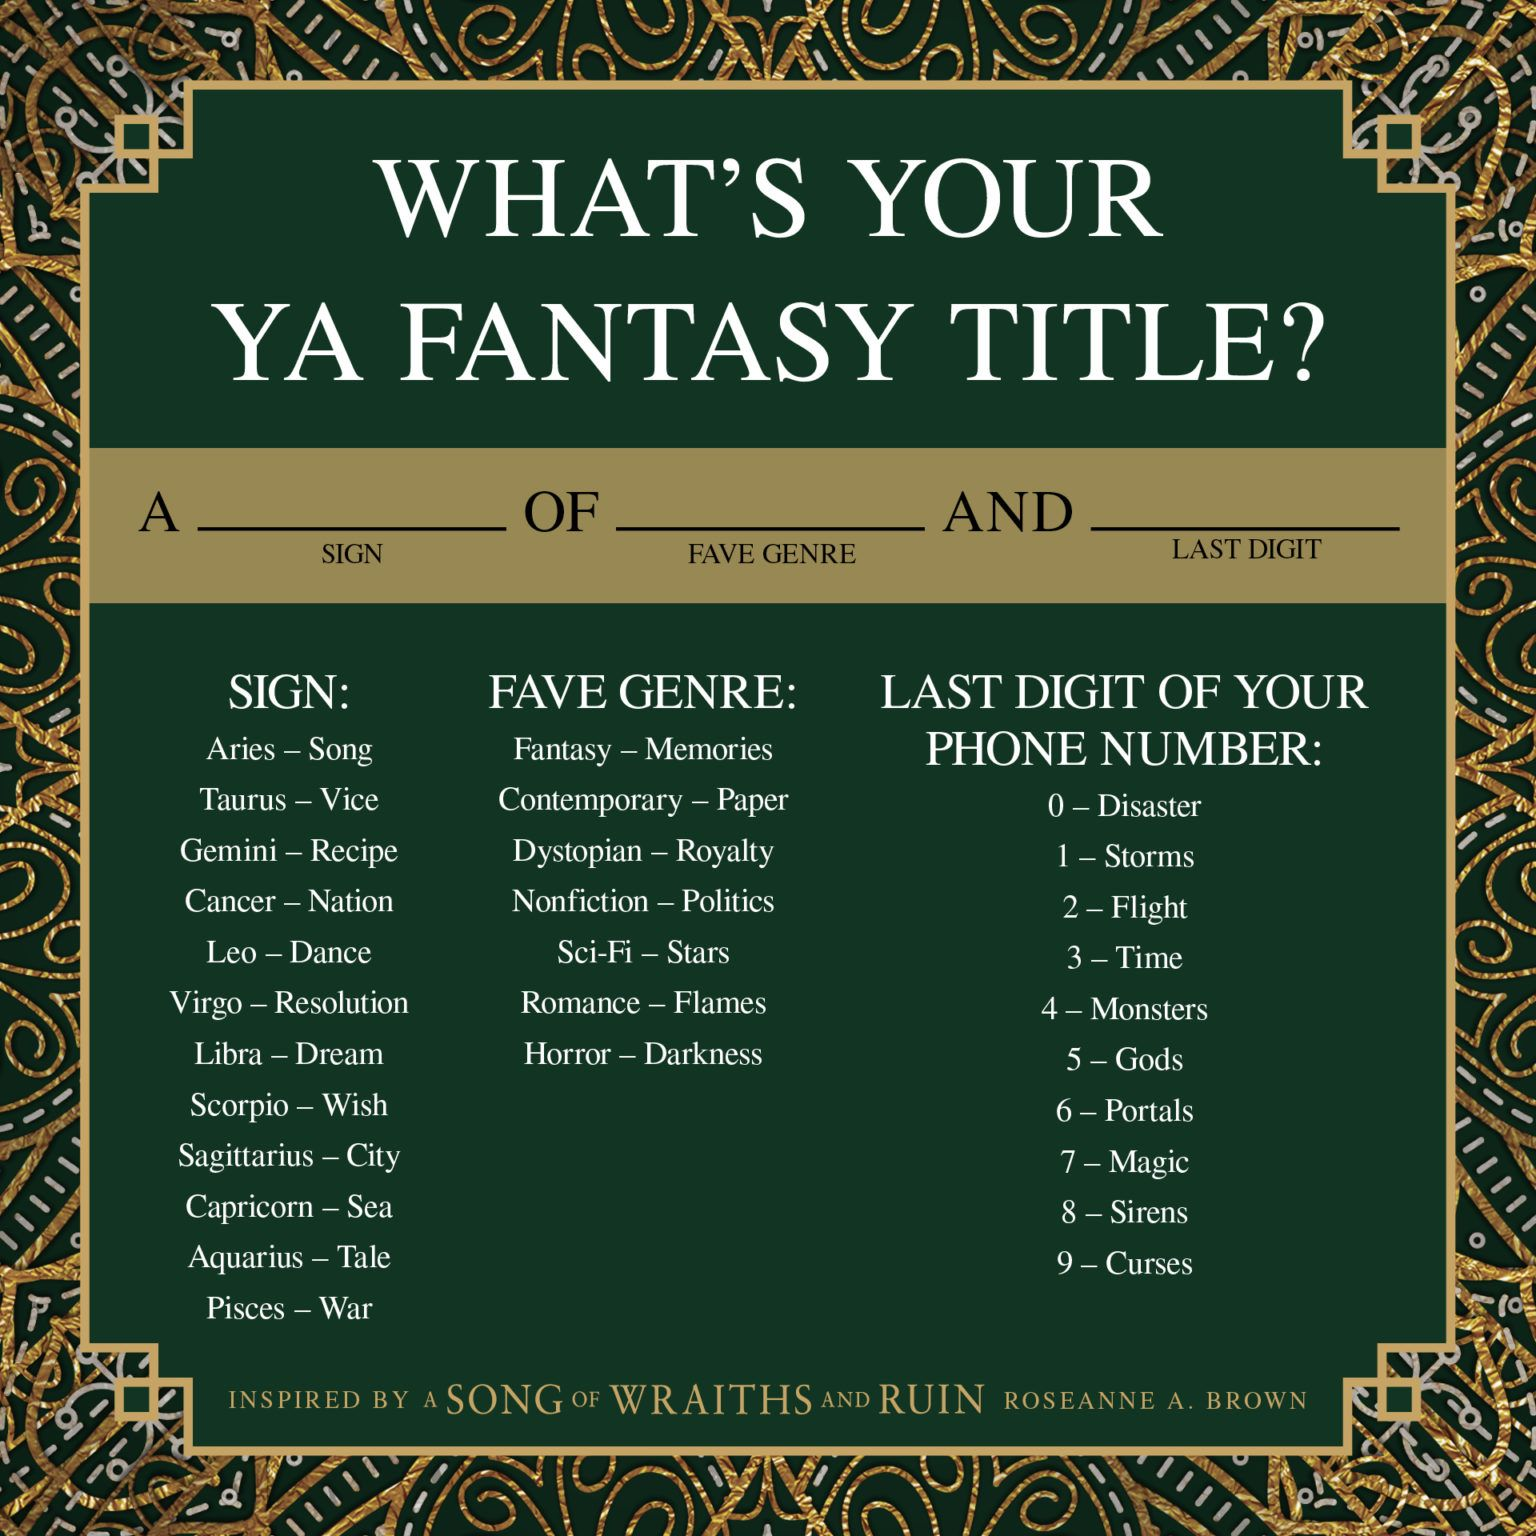 Fantasy title generator discover your own ya series now